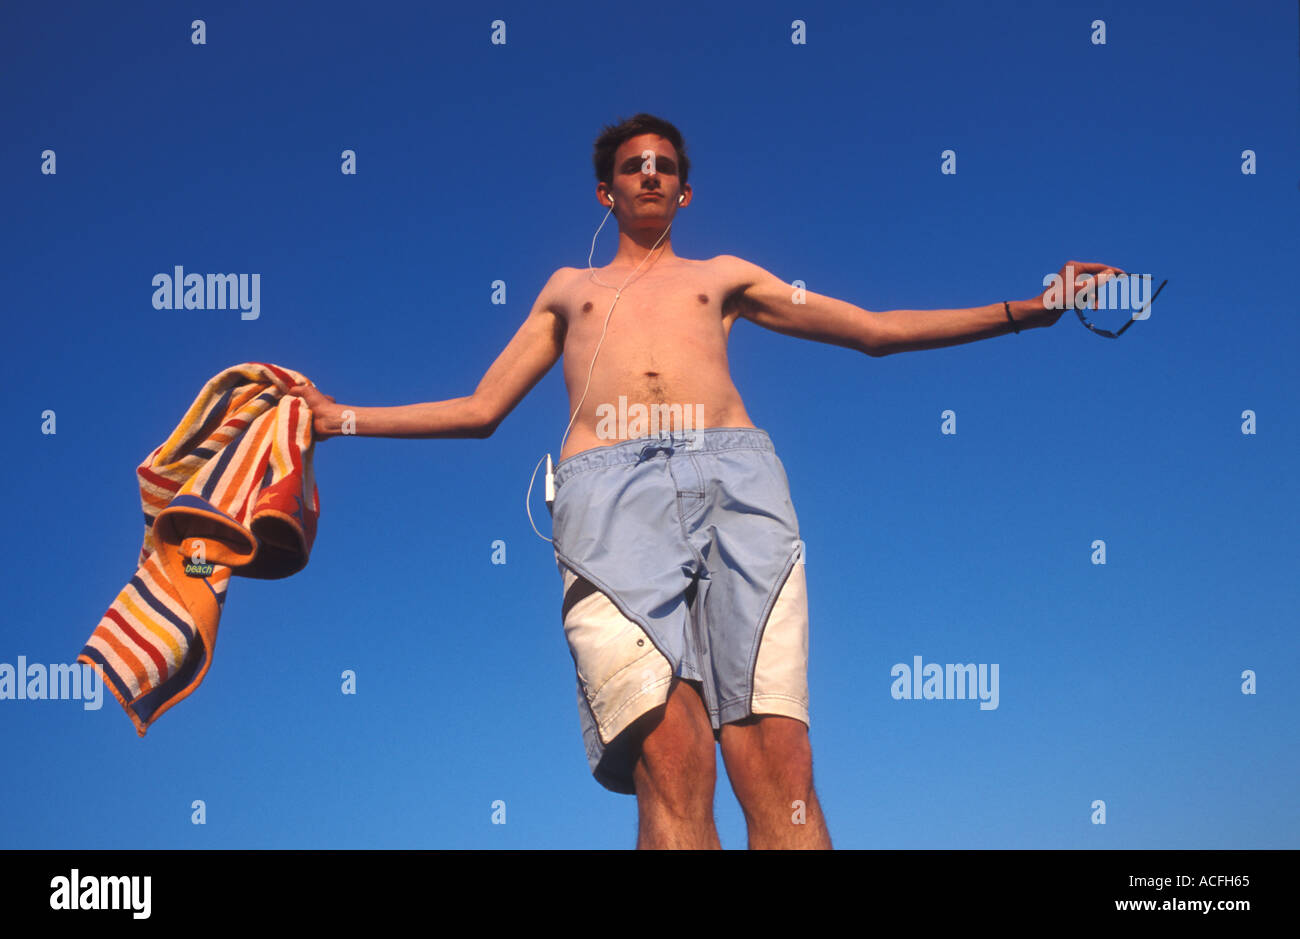 tall guy stock photos & tall guy stock images - alamy